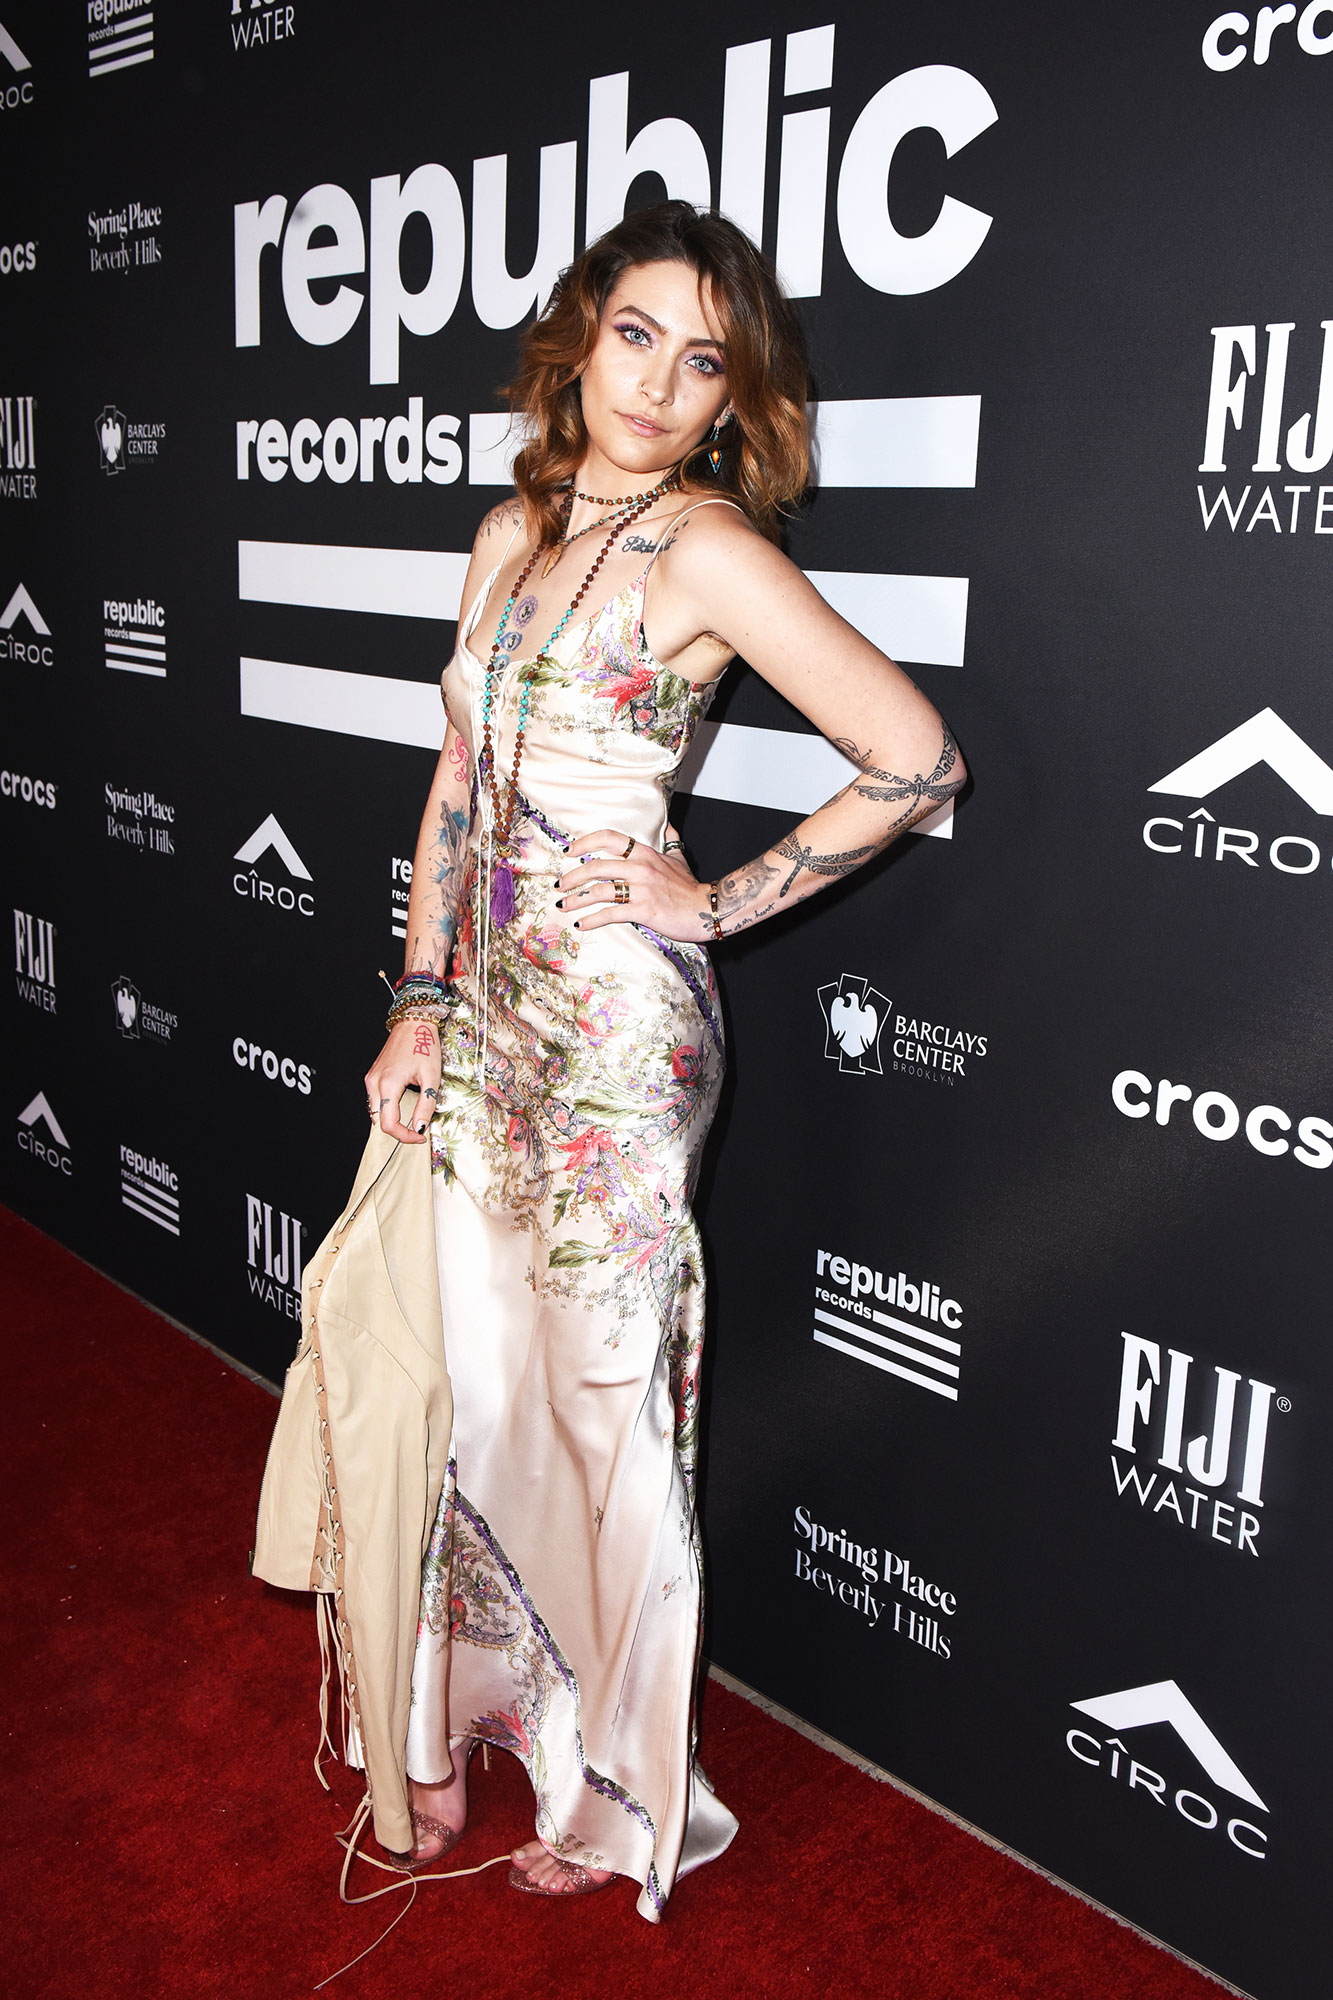 grammys 2019 Paris Jackson - The daughter of Michael Jackson went to the FIJI Water At Republic Records Grammy party in a silky spaghetti strap dress.